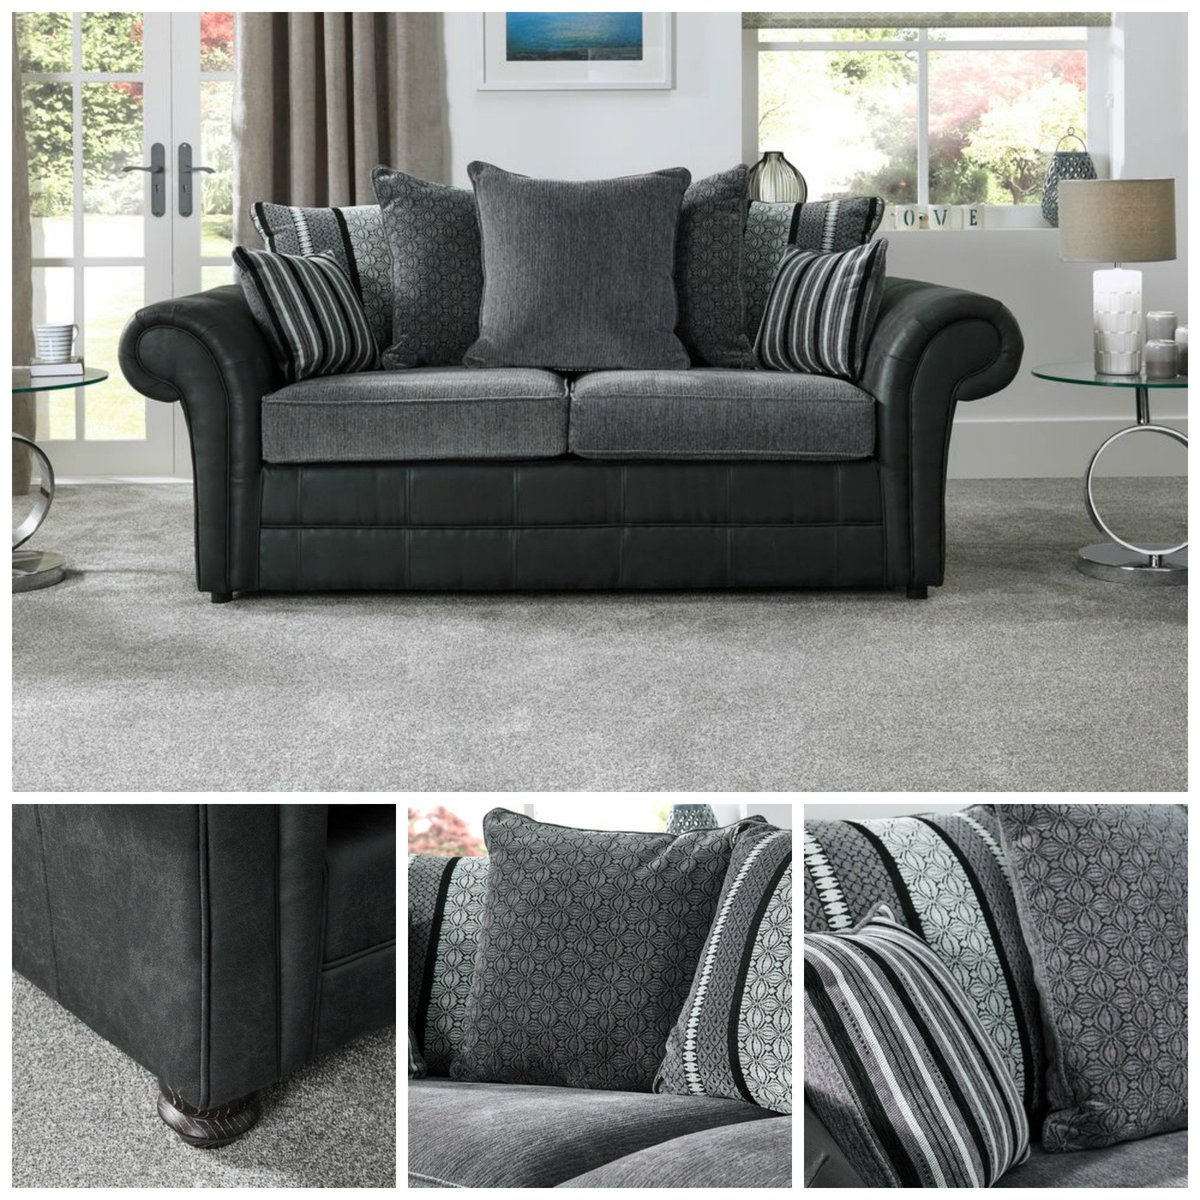 Scs Sofas On Twitter Save 600 On This Extra Comfy Milan 3 Seater